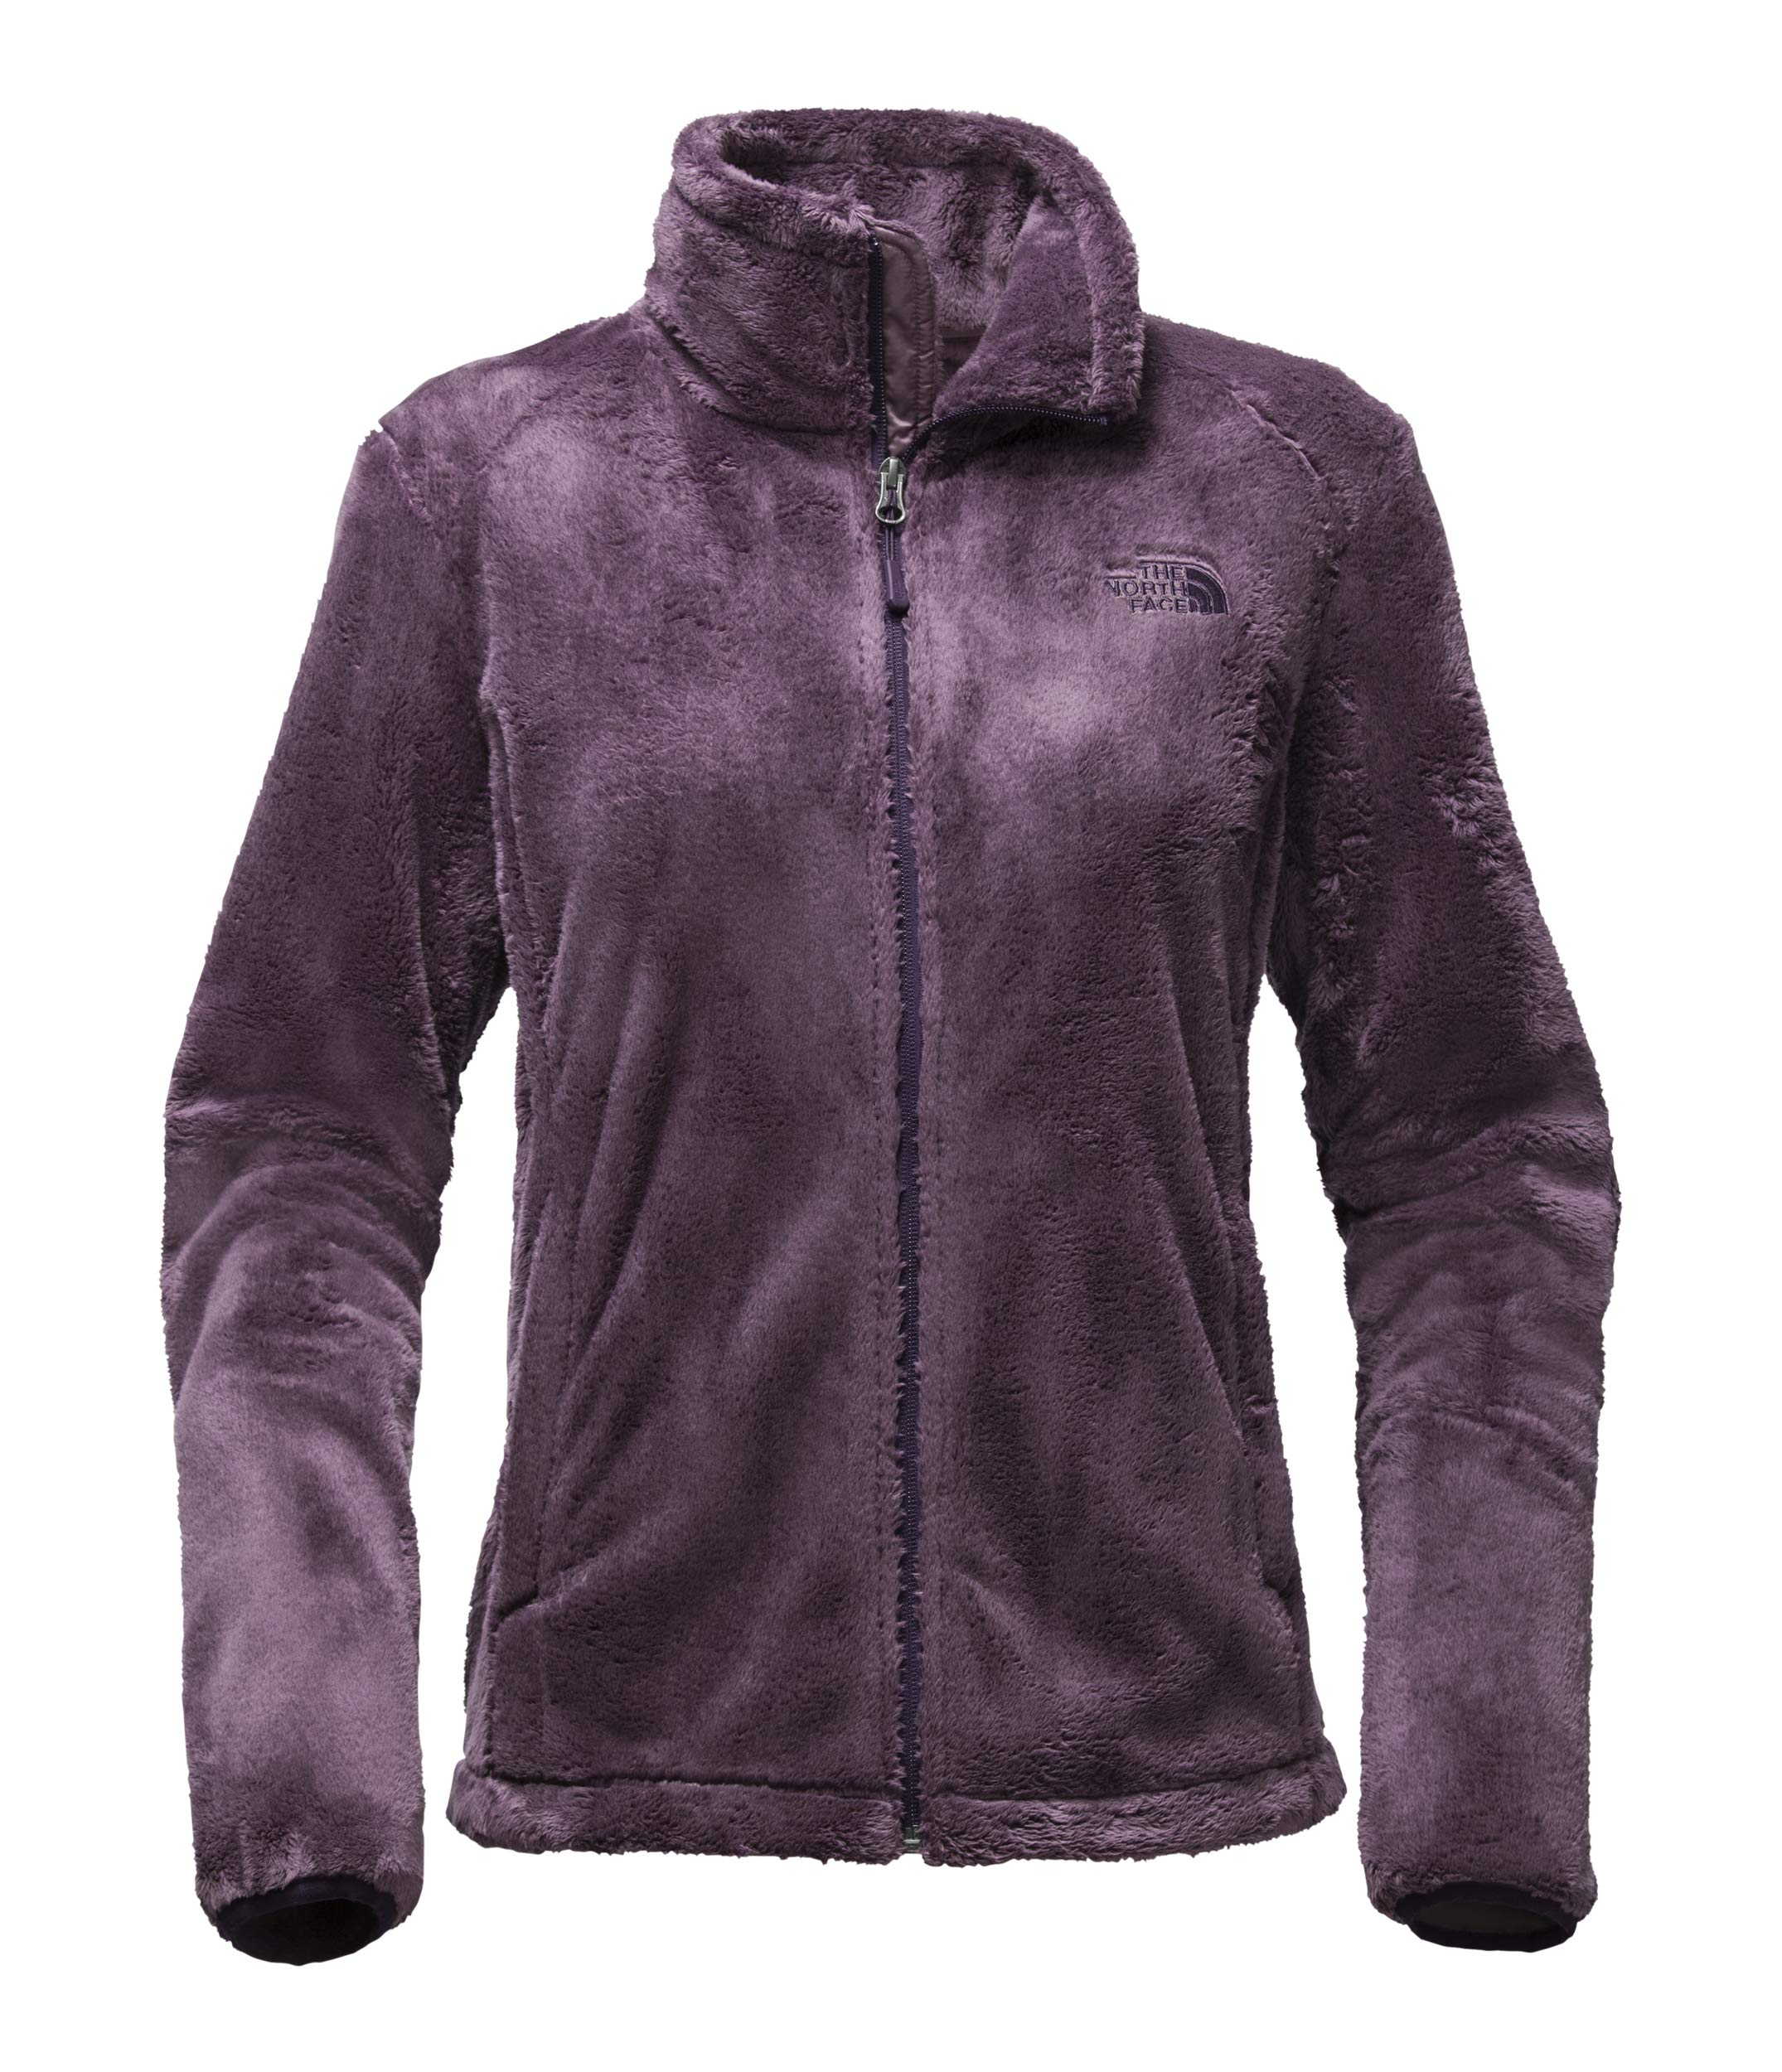 The North Face Women's Osito 2 Jacket - Black Plum - S (Past Season)